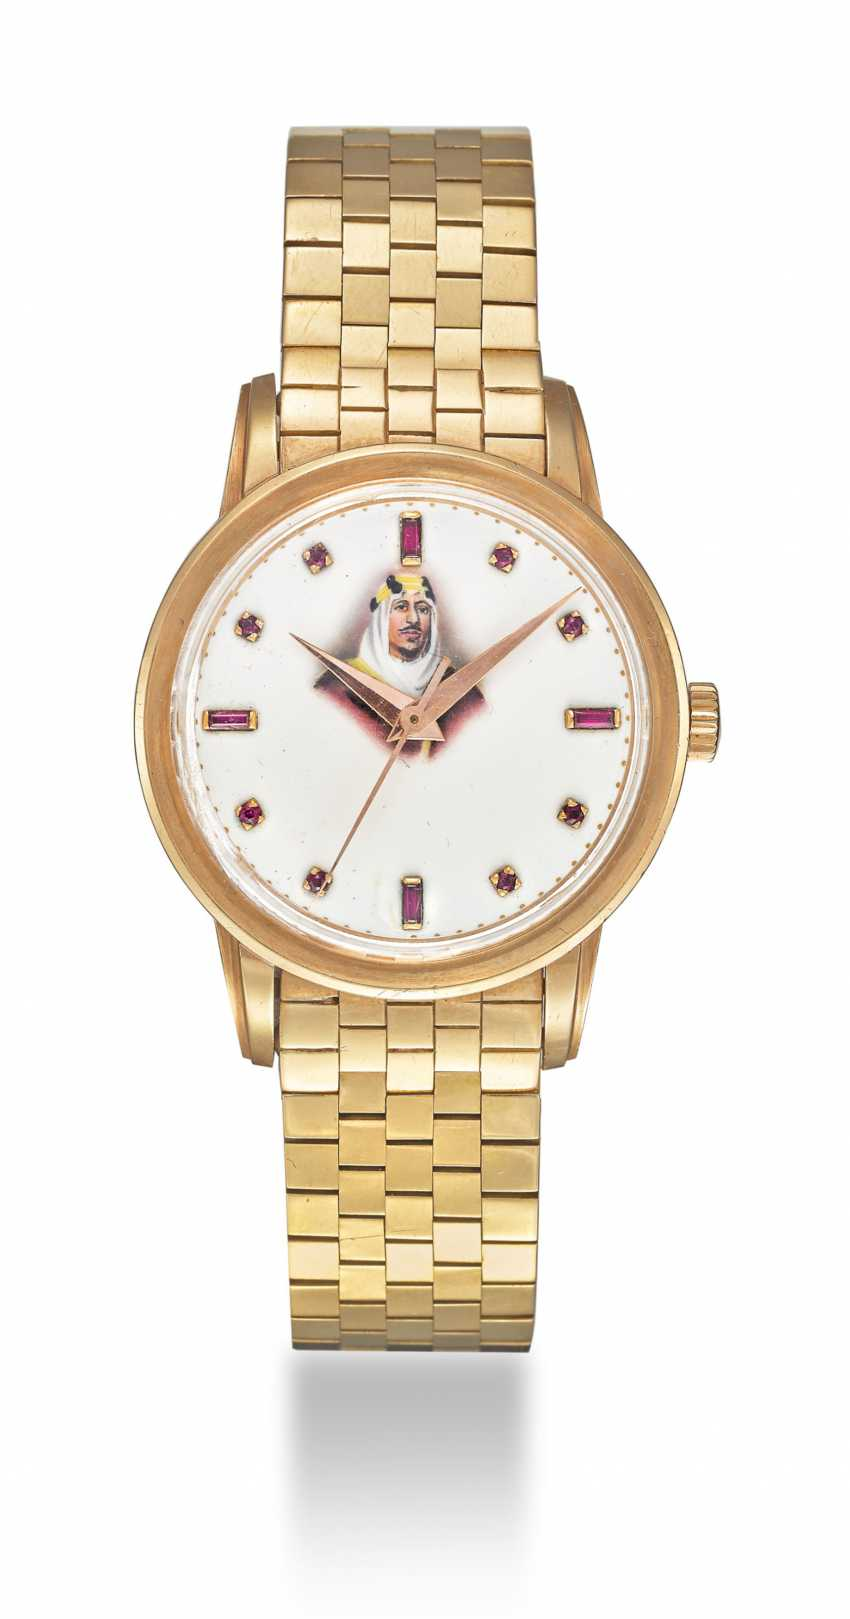 PATEK PHILIPPE, PINK GOLD AND RUBIES, REF. 2481 - MADE IN HOMAGE OF KING SAUD BIN ABDULAZIZ AL SAUD - photo 2